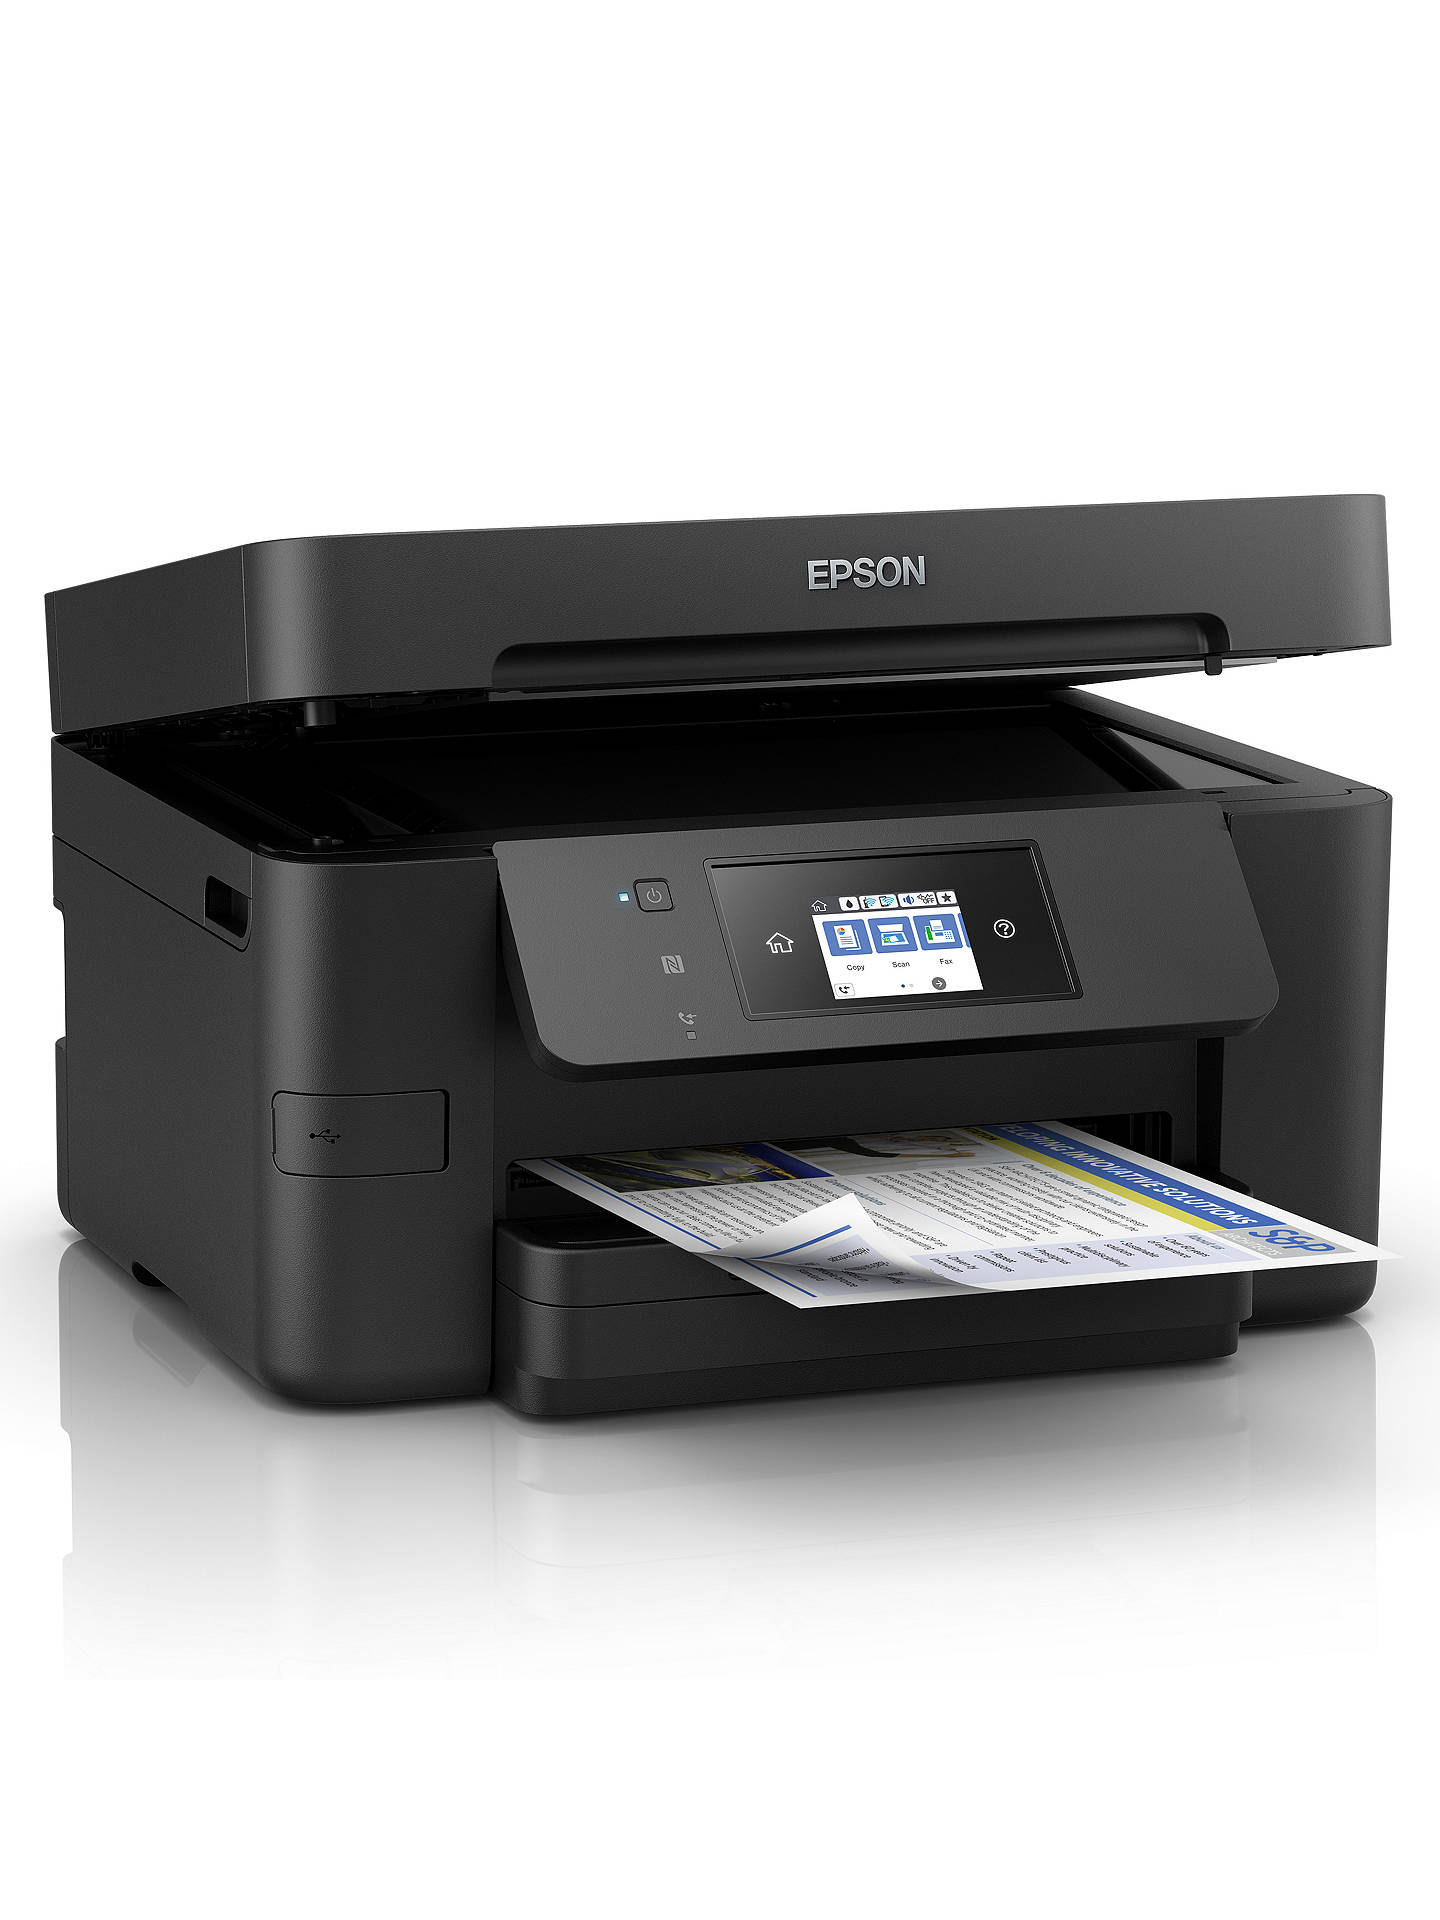 Epson Workforce Wf 3720 All In One Wireless Printer Black